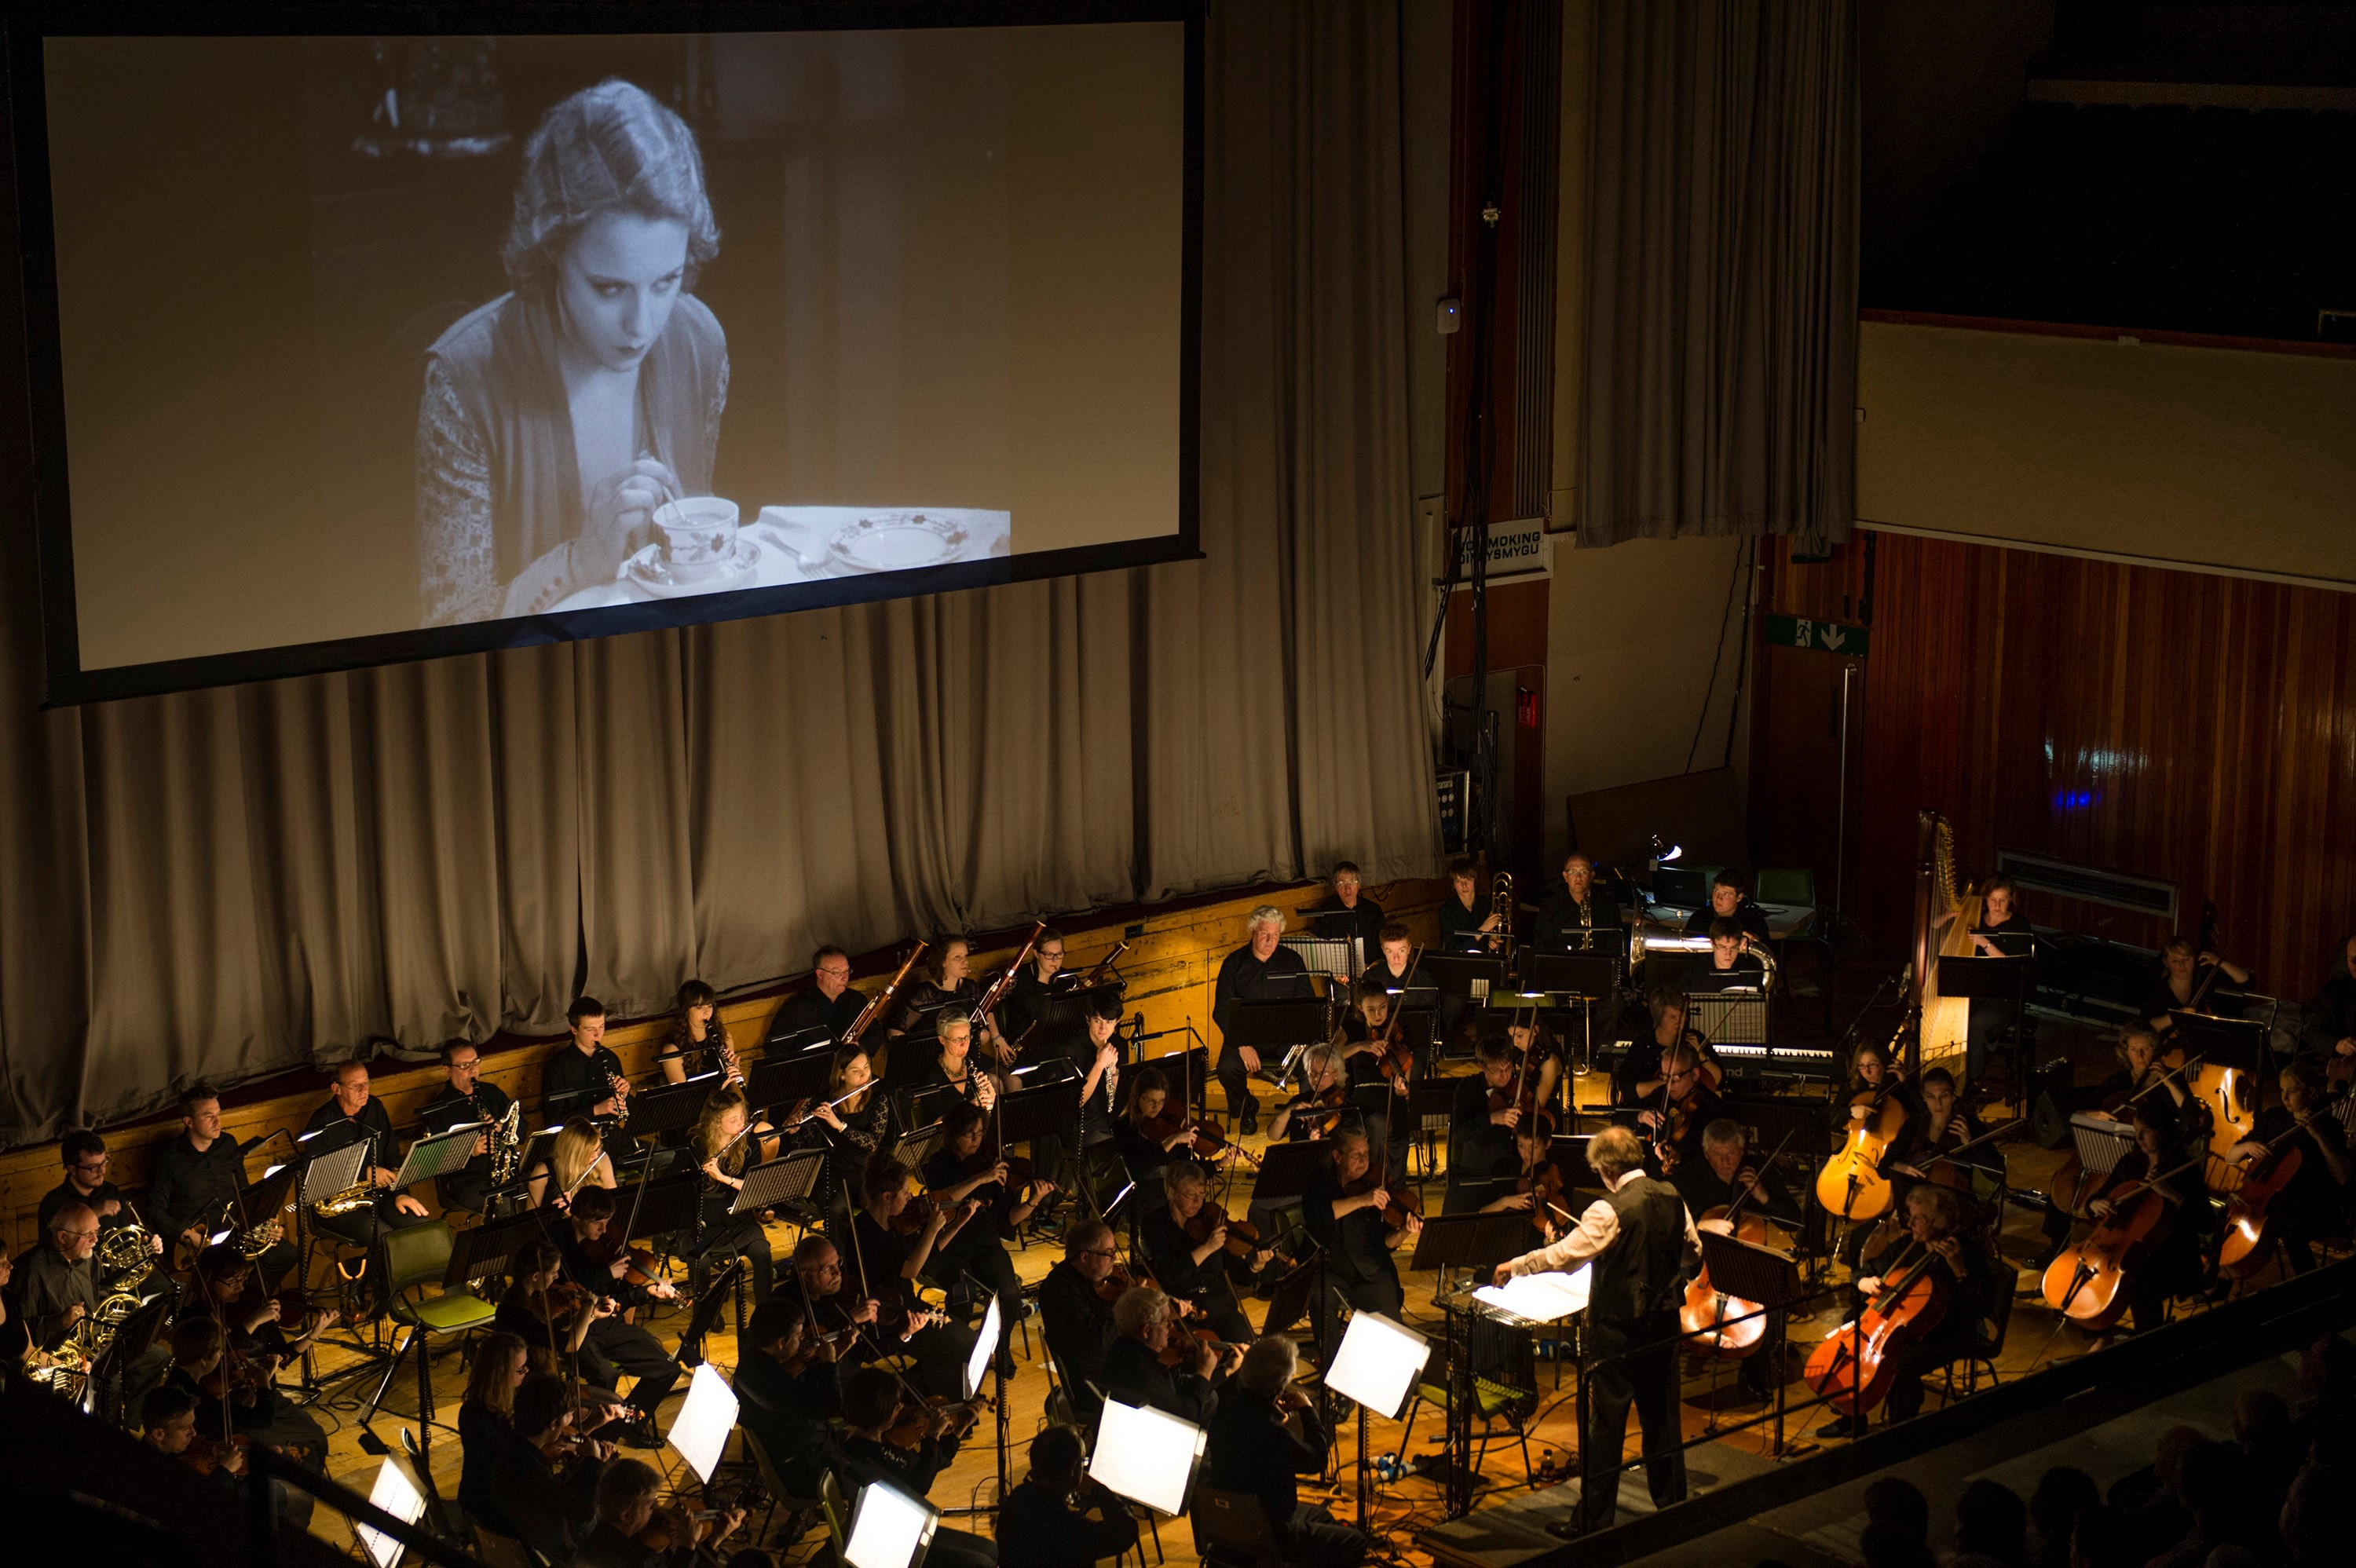 Philomusica performing Neil's score to accompany a screening of Hitchcock's thriller Blackmail at Aberystwyth Arts Centre in 2014. Photo credit: Keith Morris